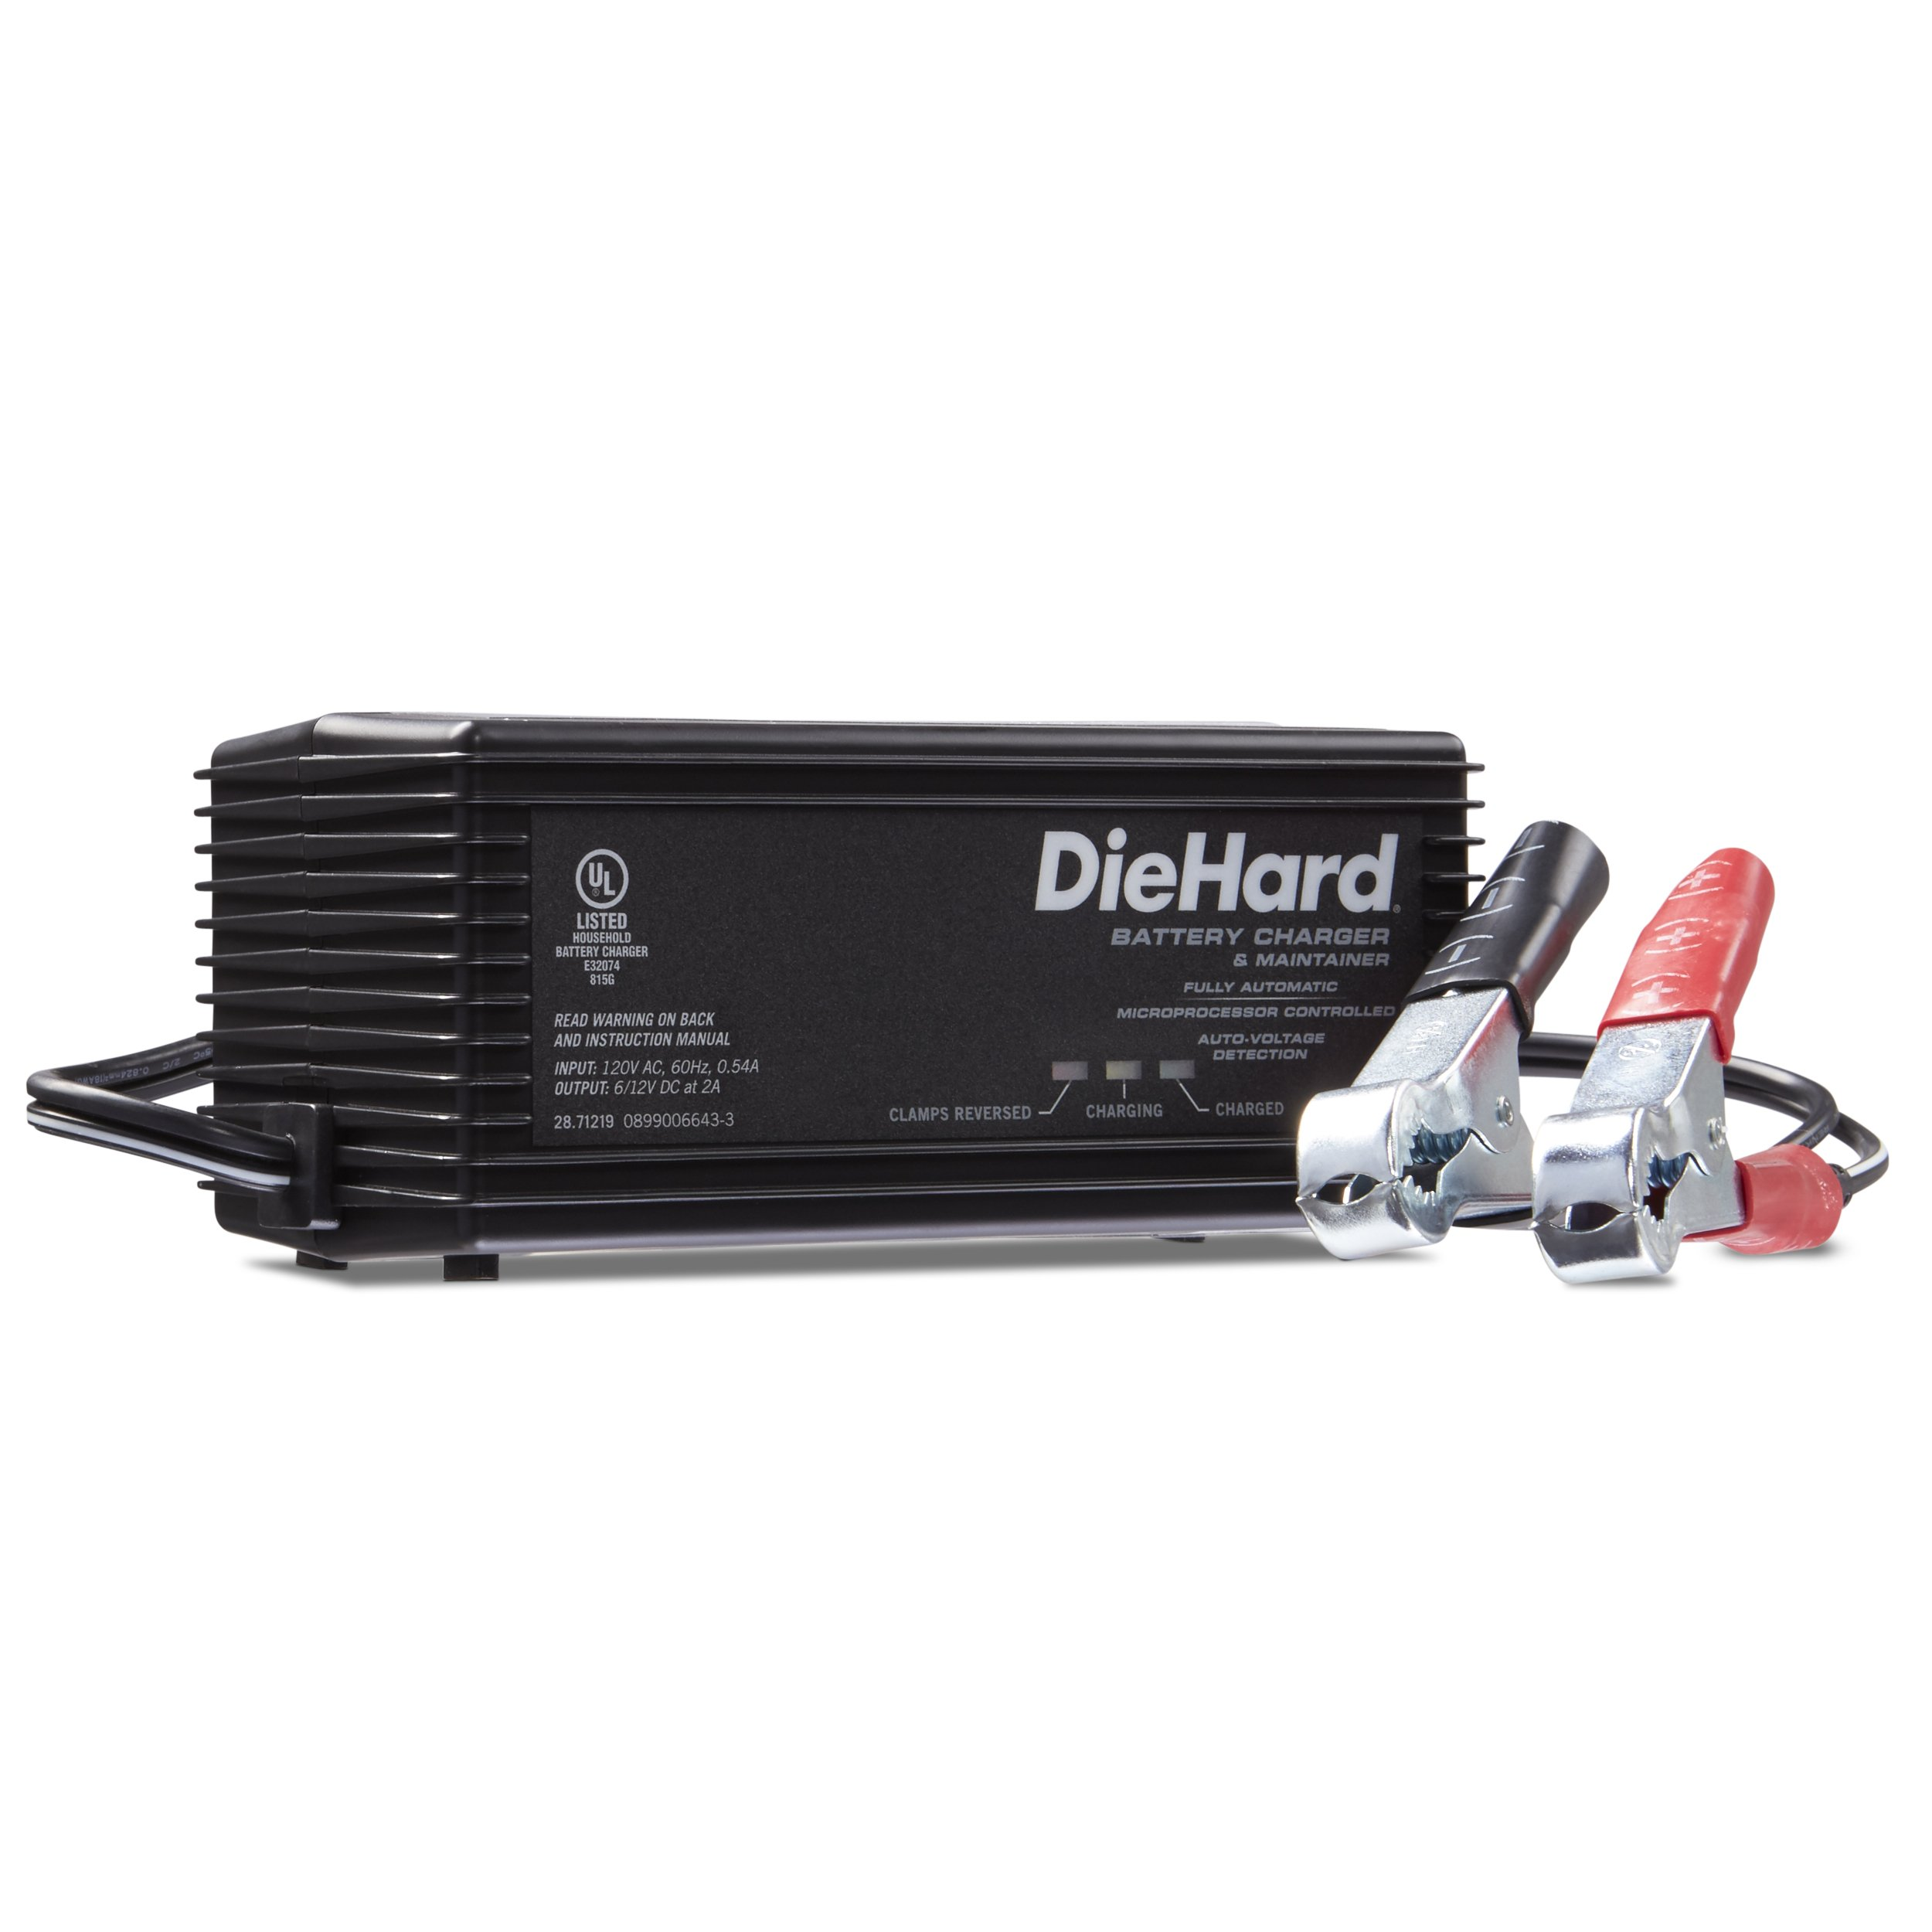 DieHard 71219 Battery Charger Maintainer